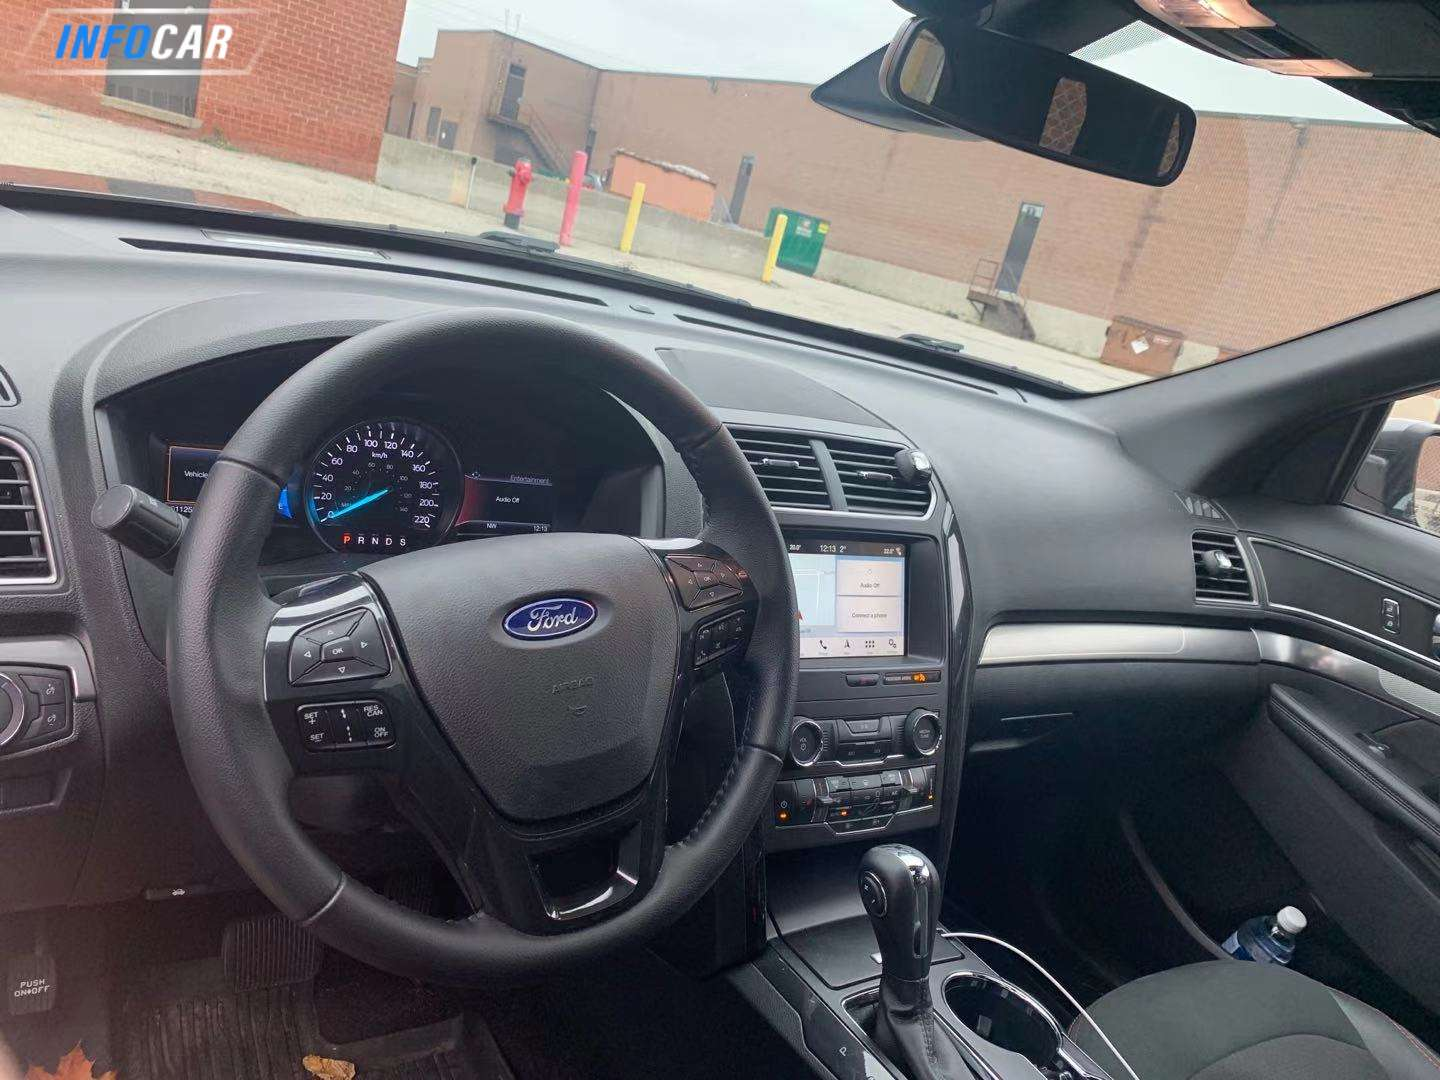 2019 Ford Explorer XLT - INFOCAR - Toronto's Most Comprehensive New and Used Auto Trading Platform